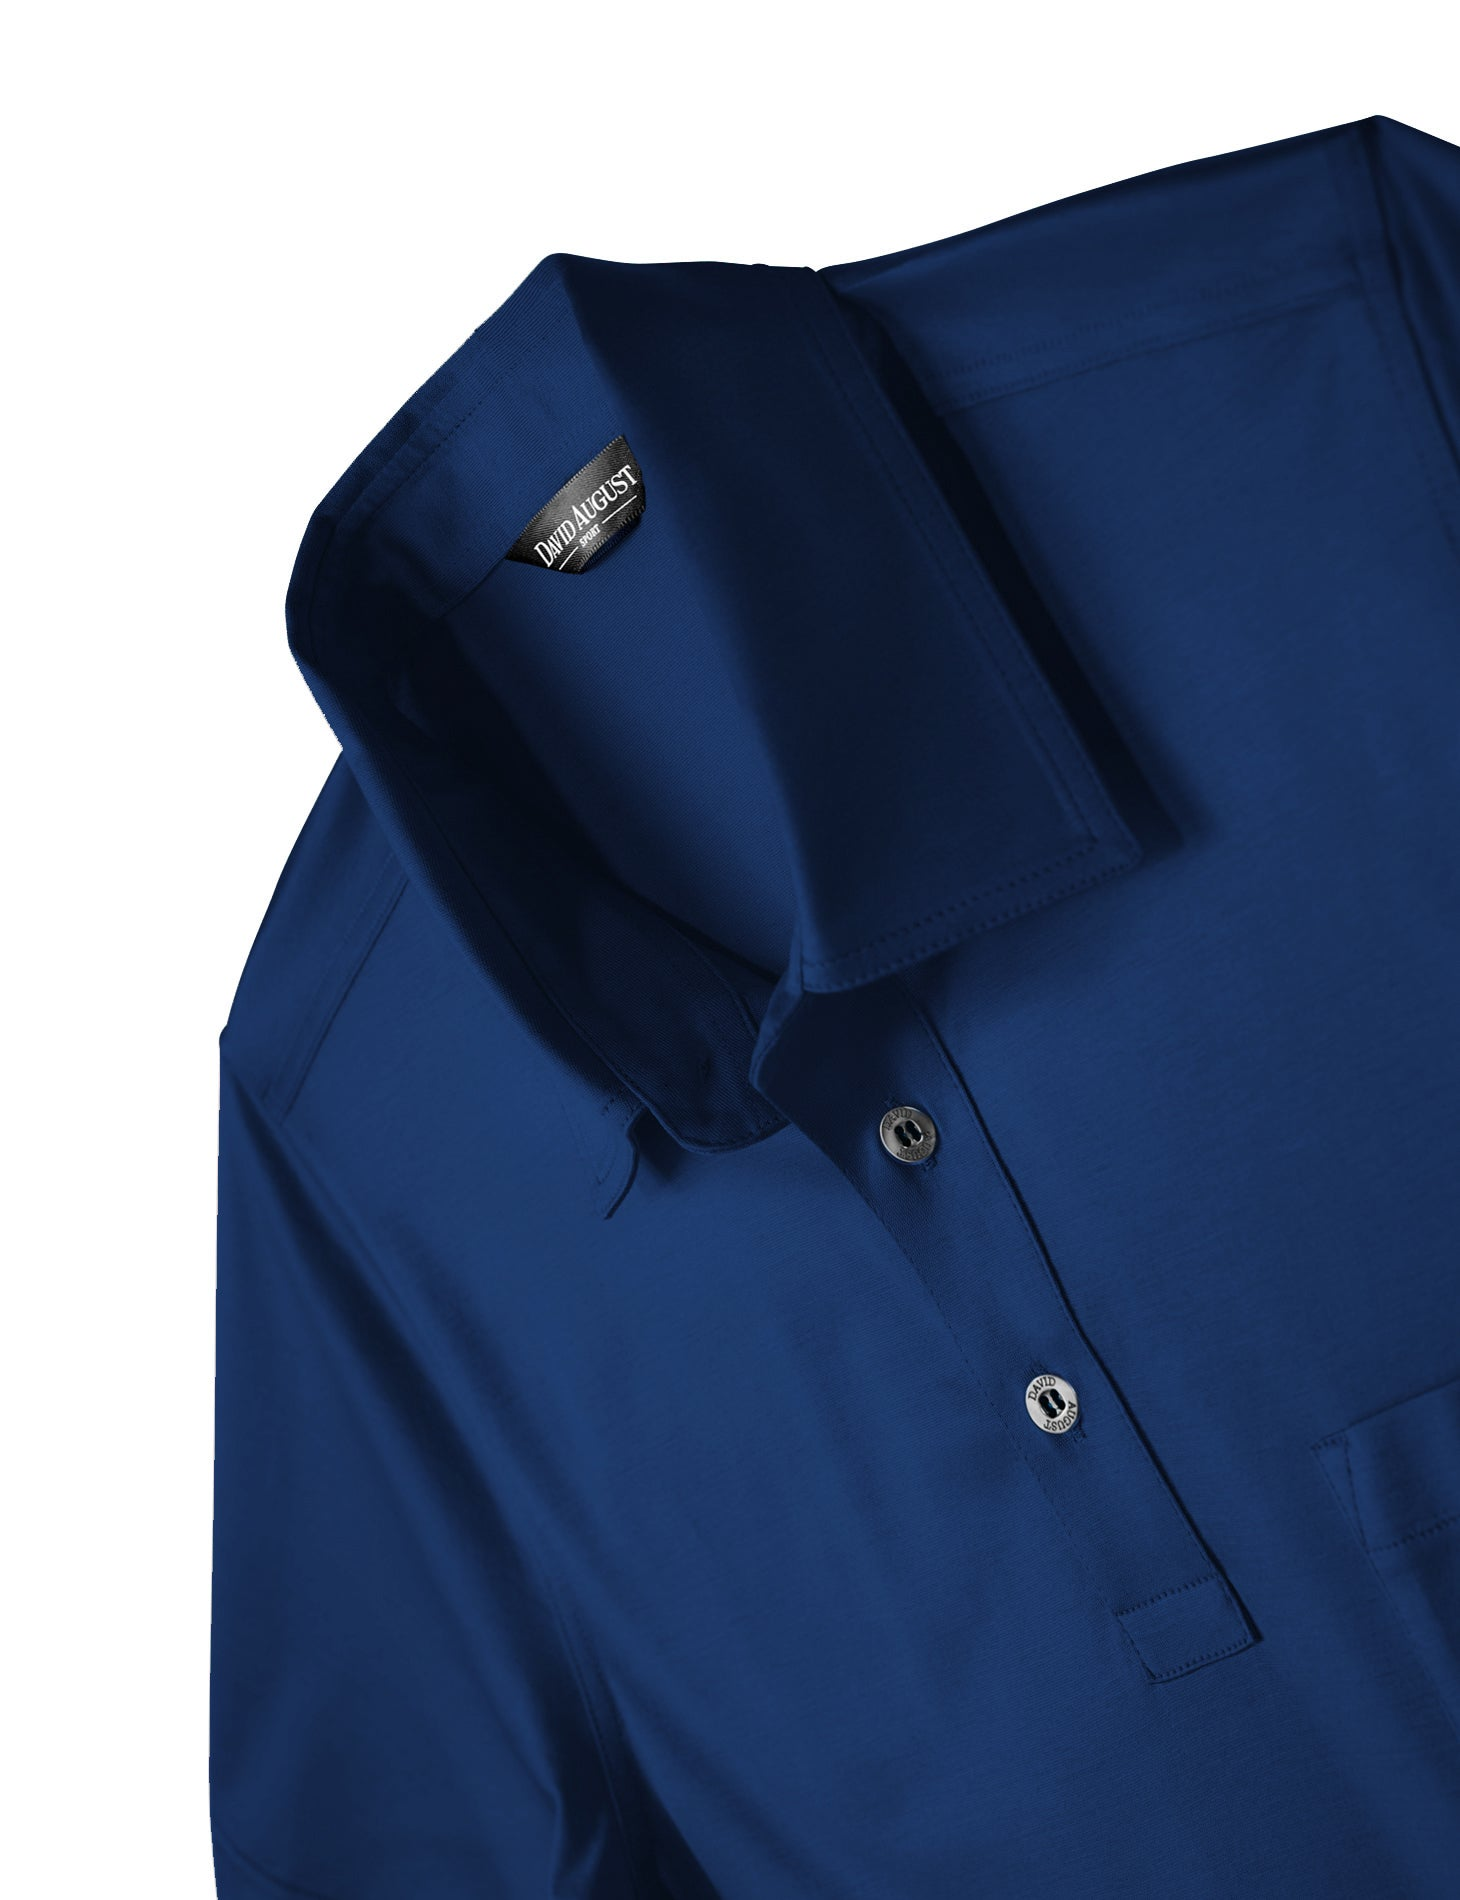 David August Luxury Mercerized Cotton Polo in Medium Blue